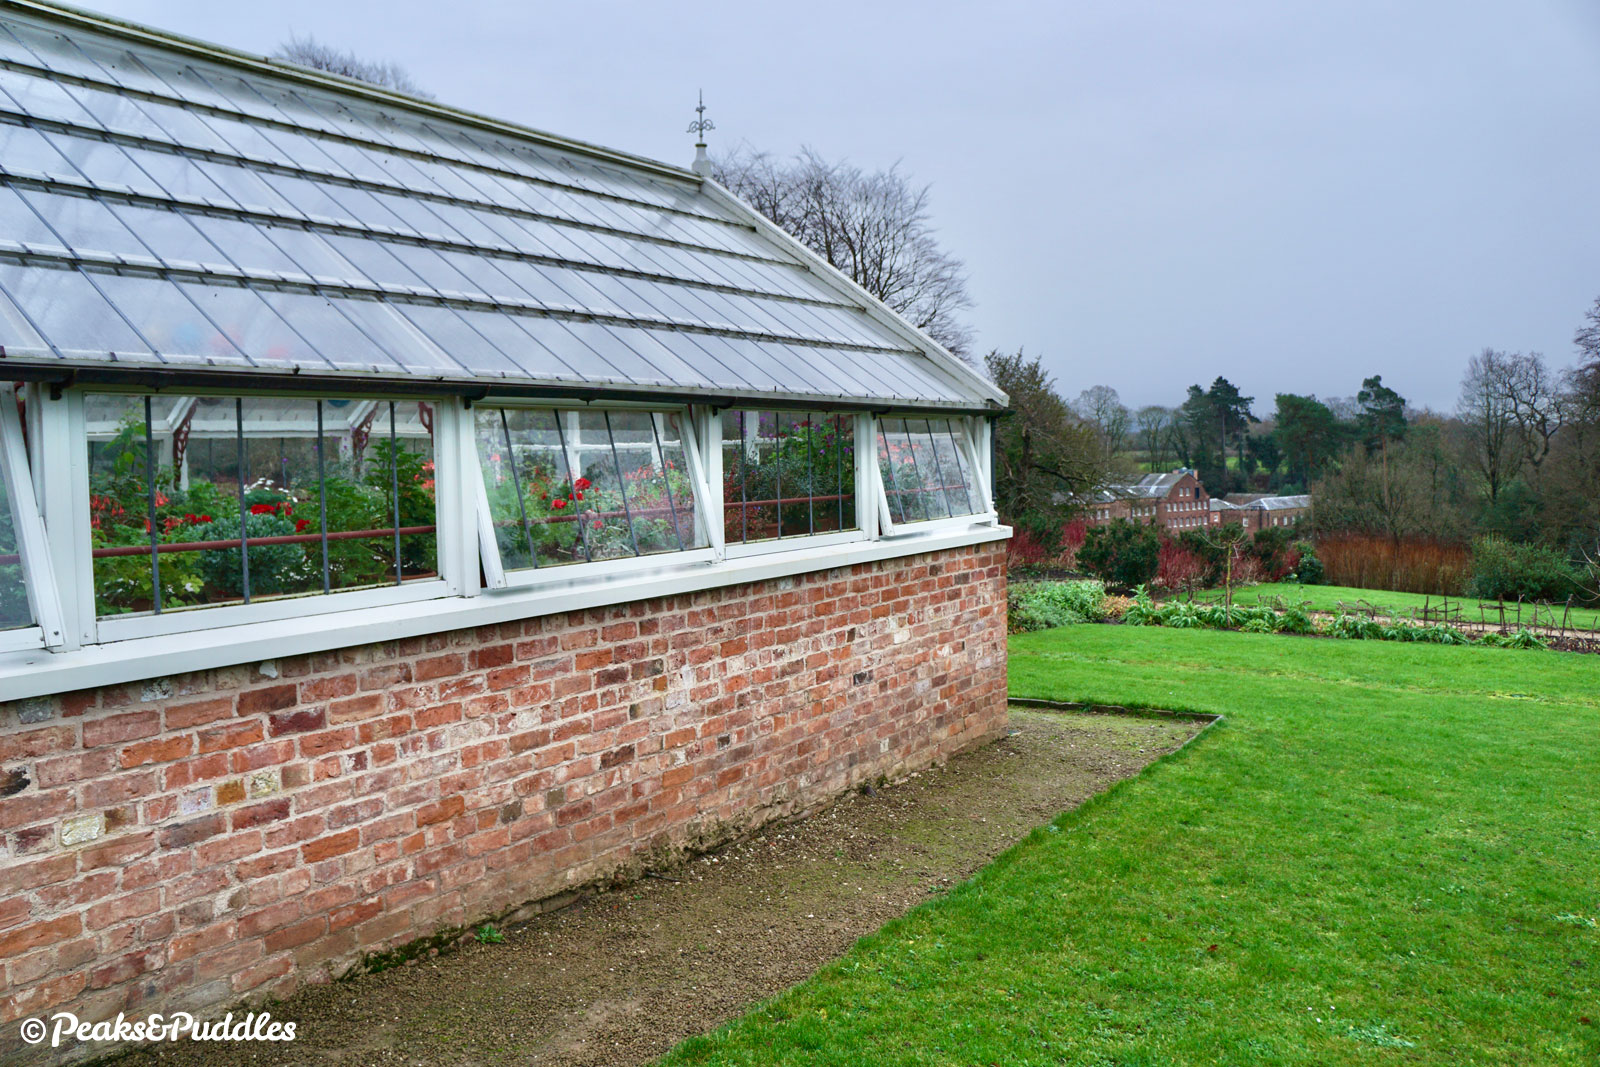 The Kitchen Garden, beautiful restored glasshouses and modern cafe at Quarry Bank are well worth a diversion too. (Entry fee required)